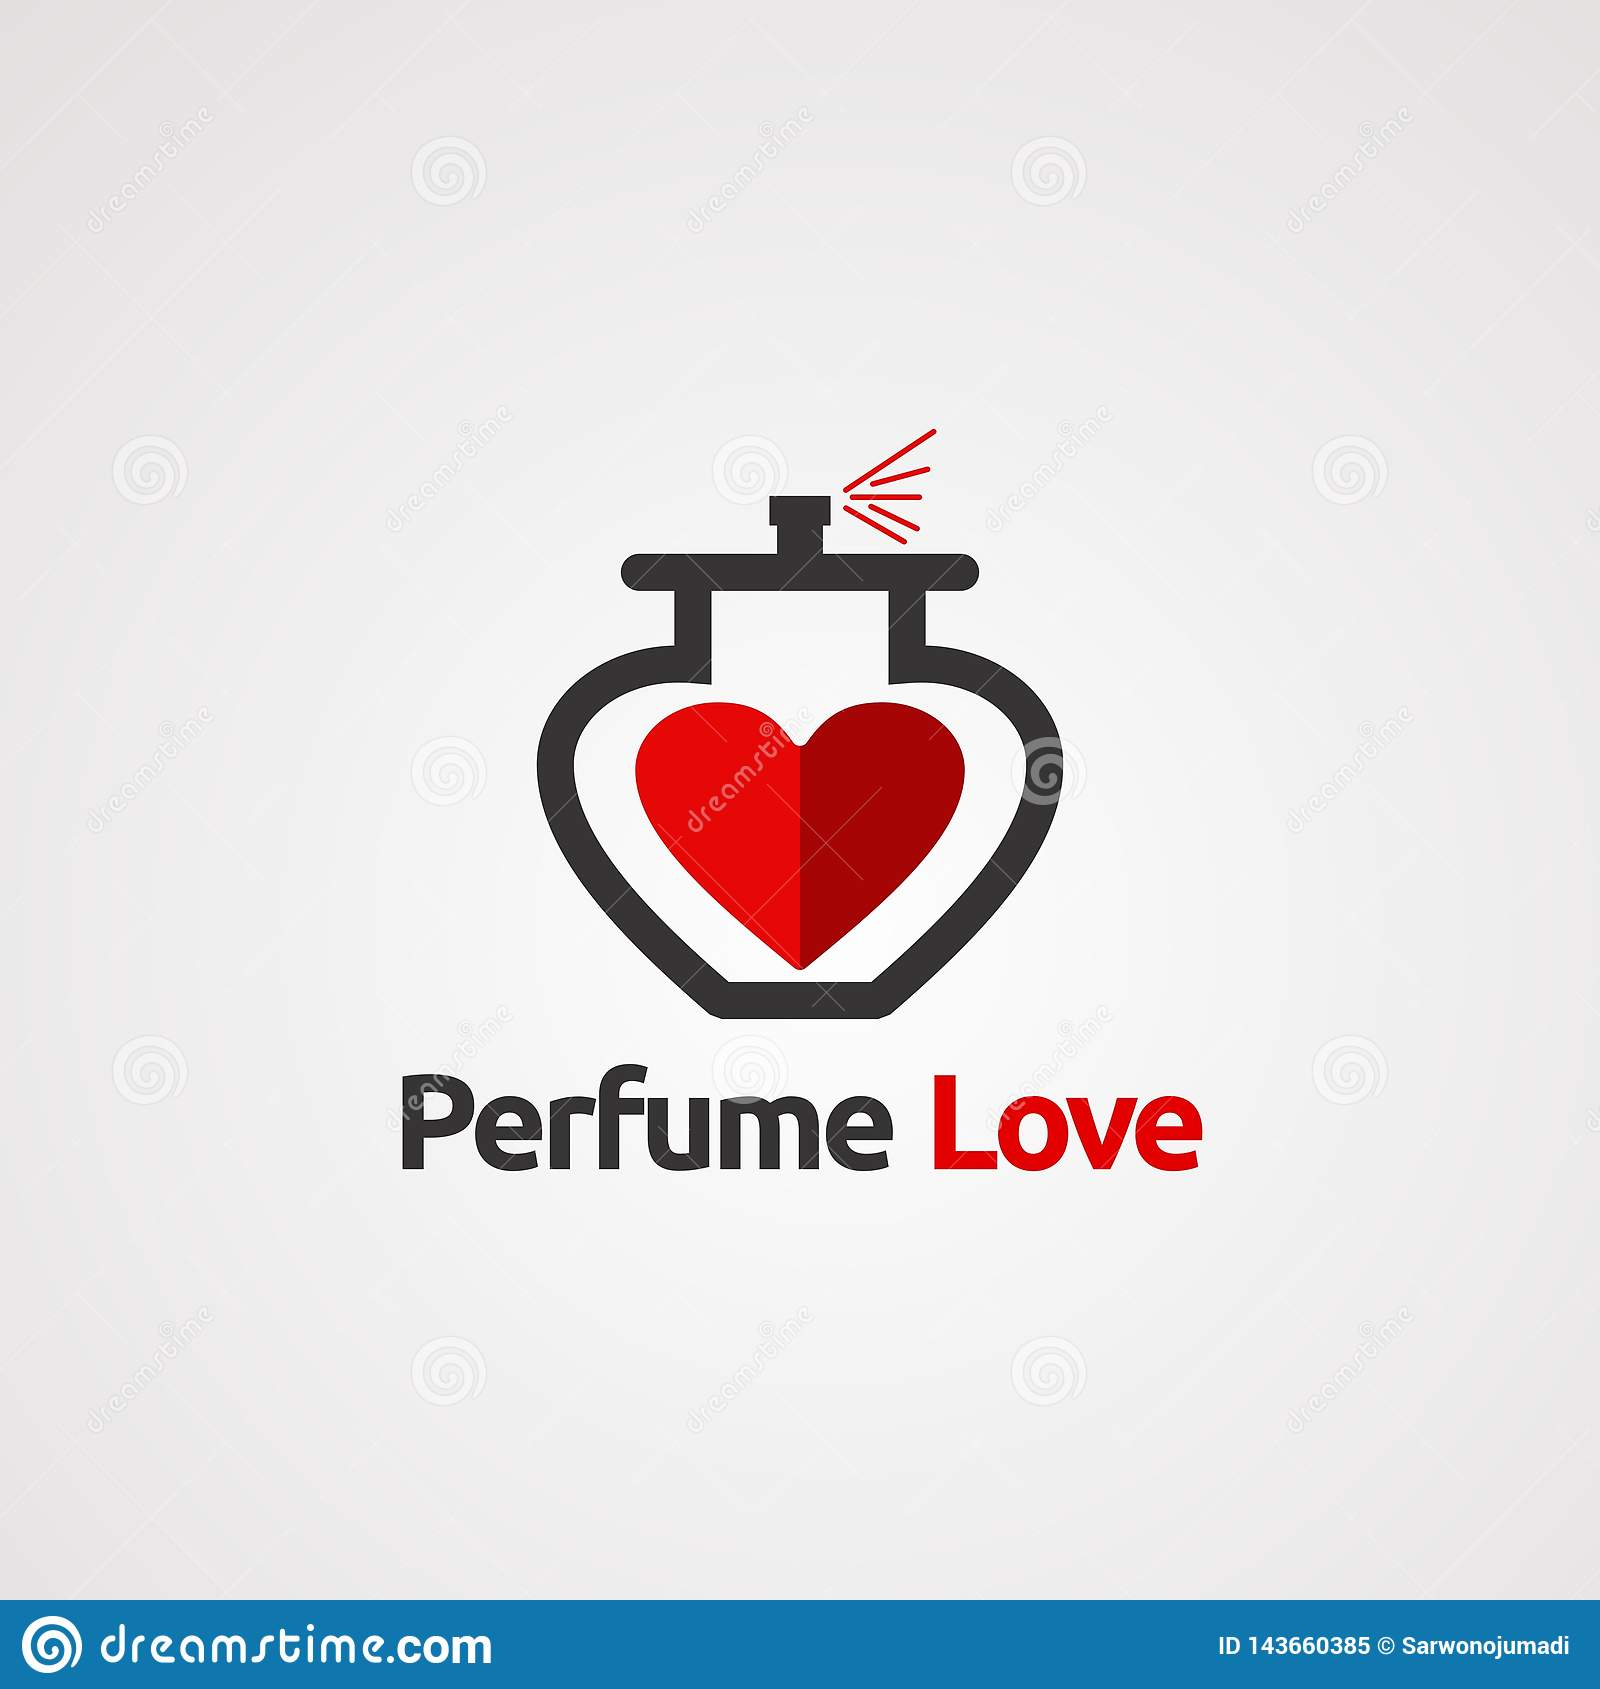 Perfume red love with elegant concept logo vector, icon, element, and template for company